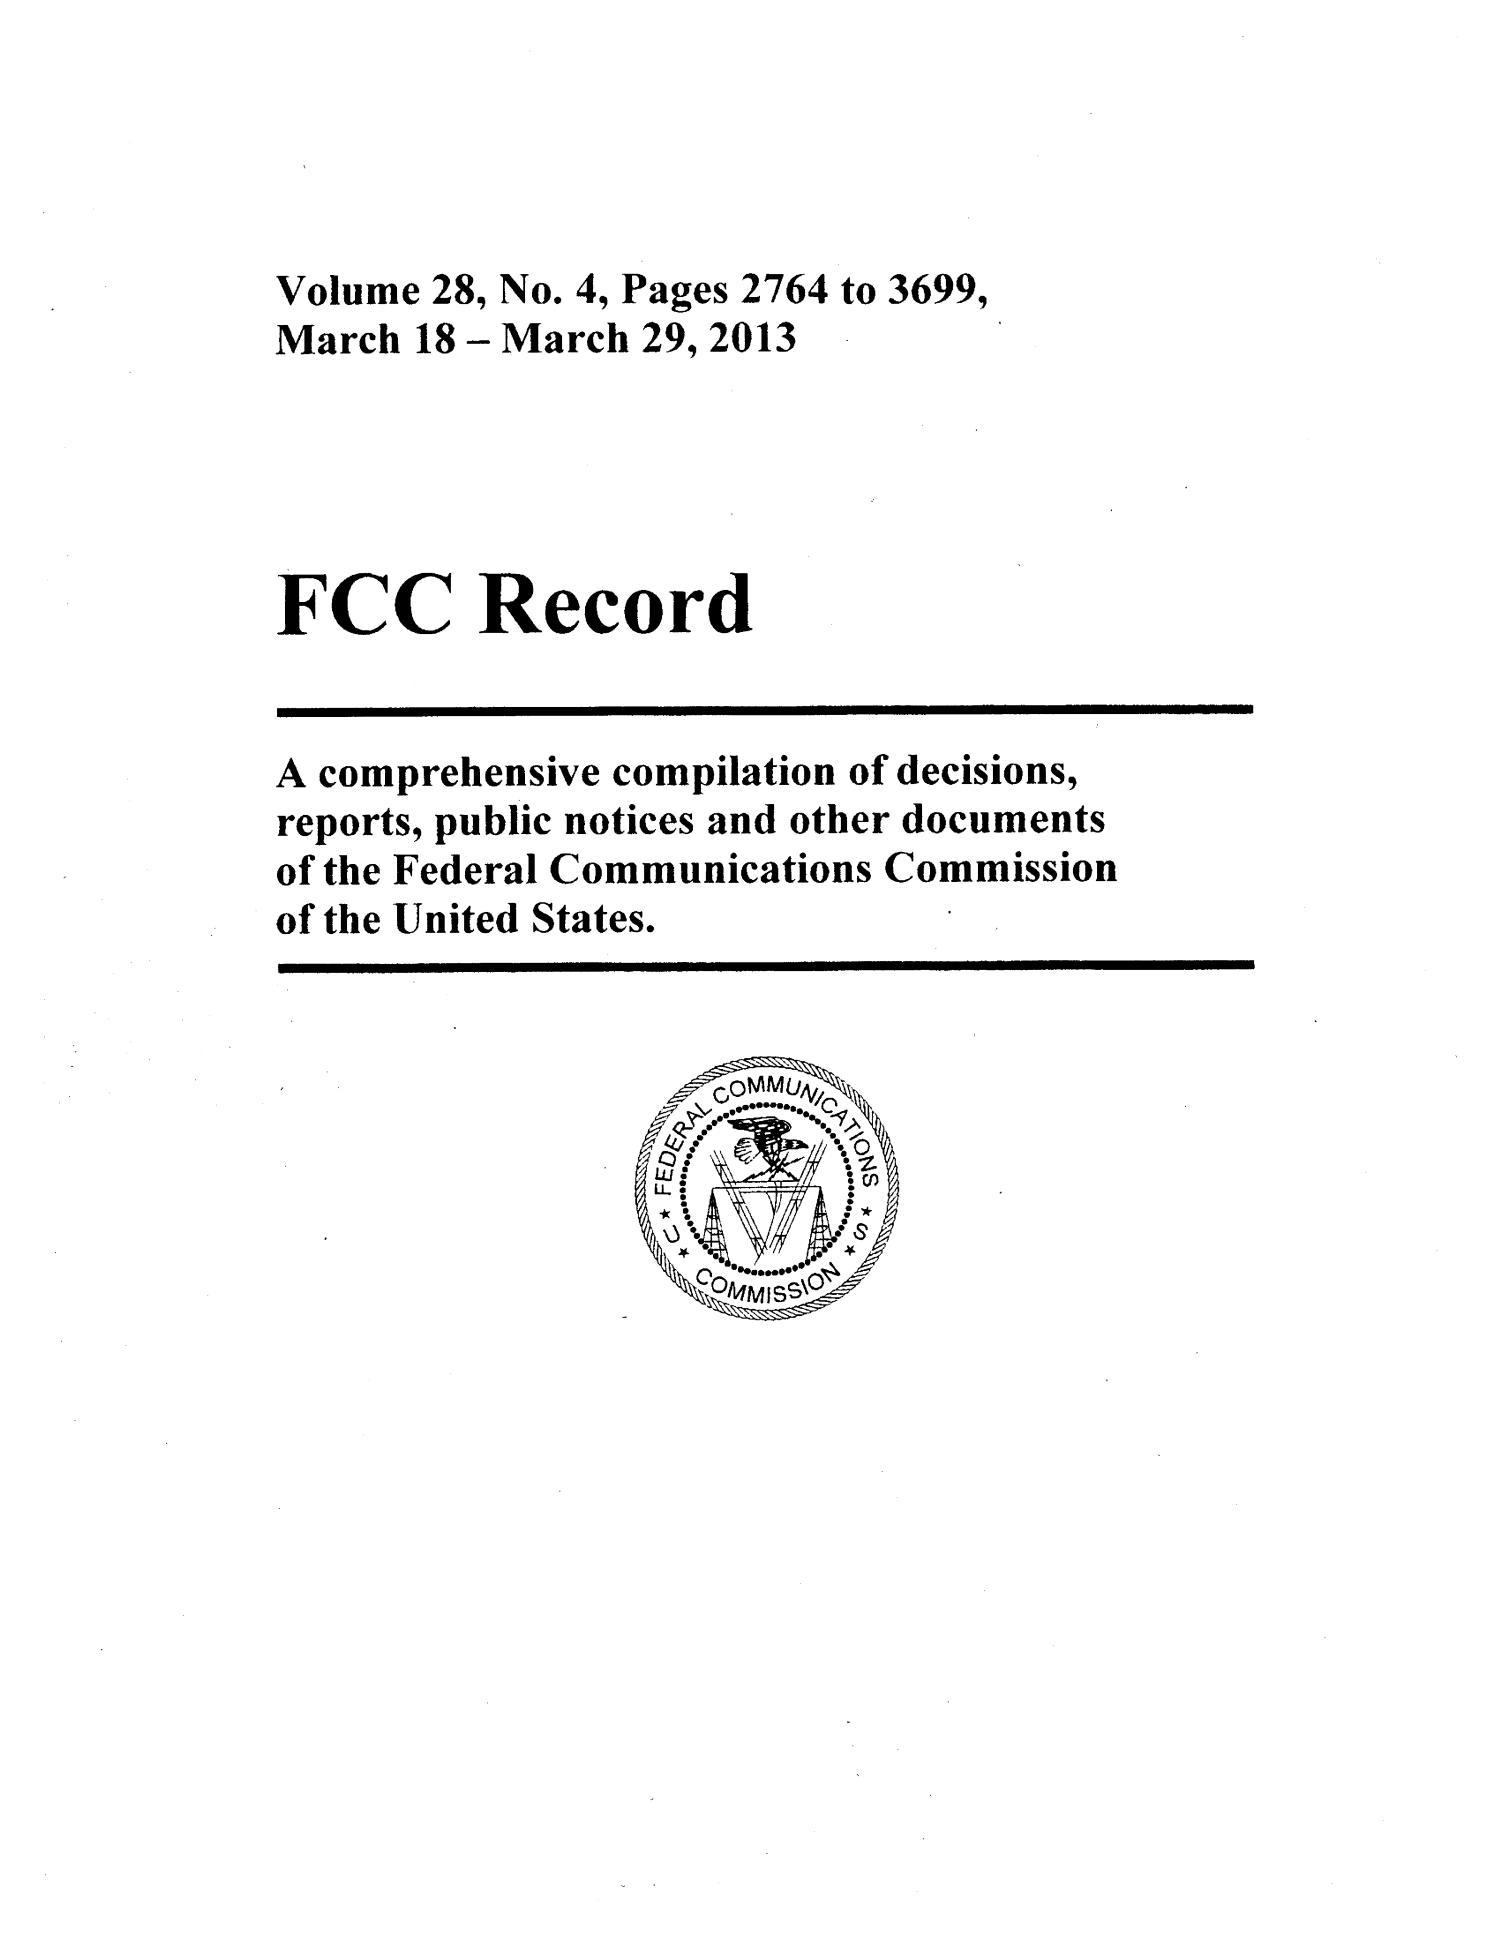 FCC Record, Volume 28, No. 4, Pages 2764 to 3699, March 18 - March 29, 2013                                                                                                      Front Cover